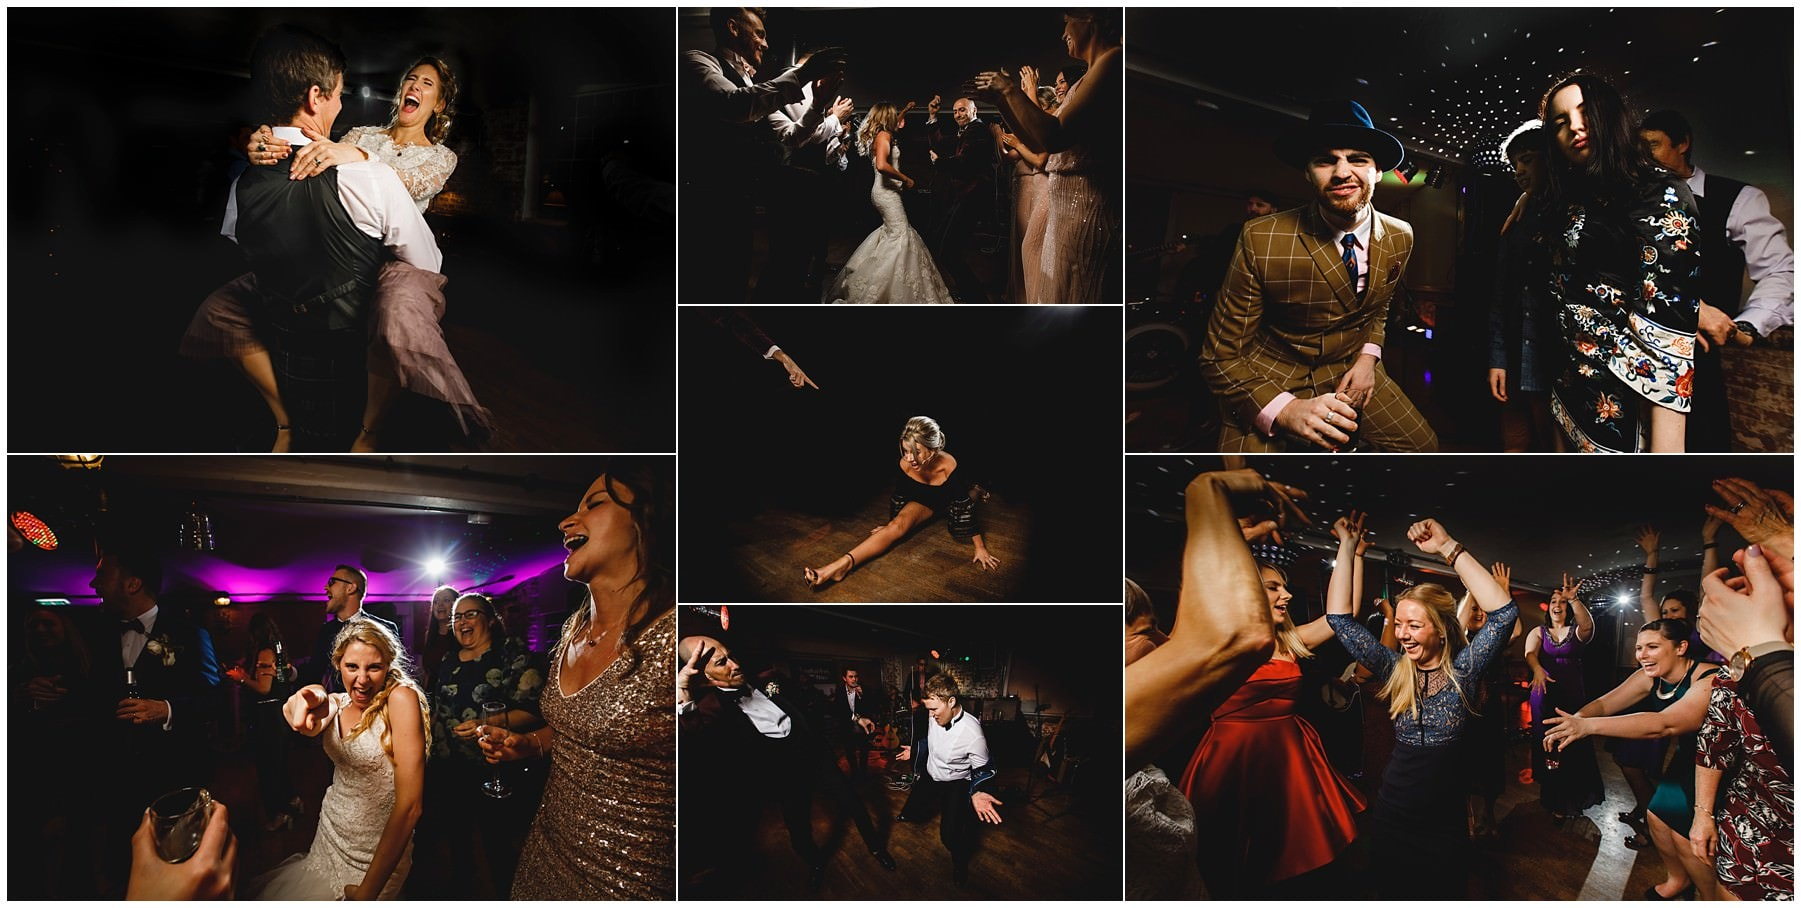 party photos at The West mill in Derbyshire - Industrial Wedding venue